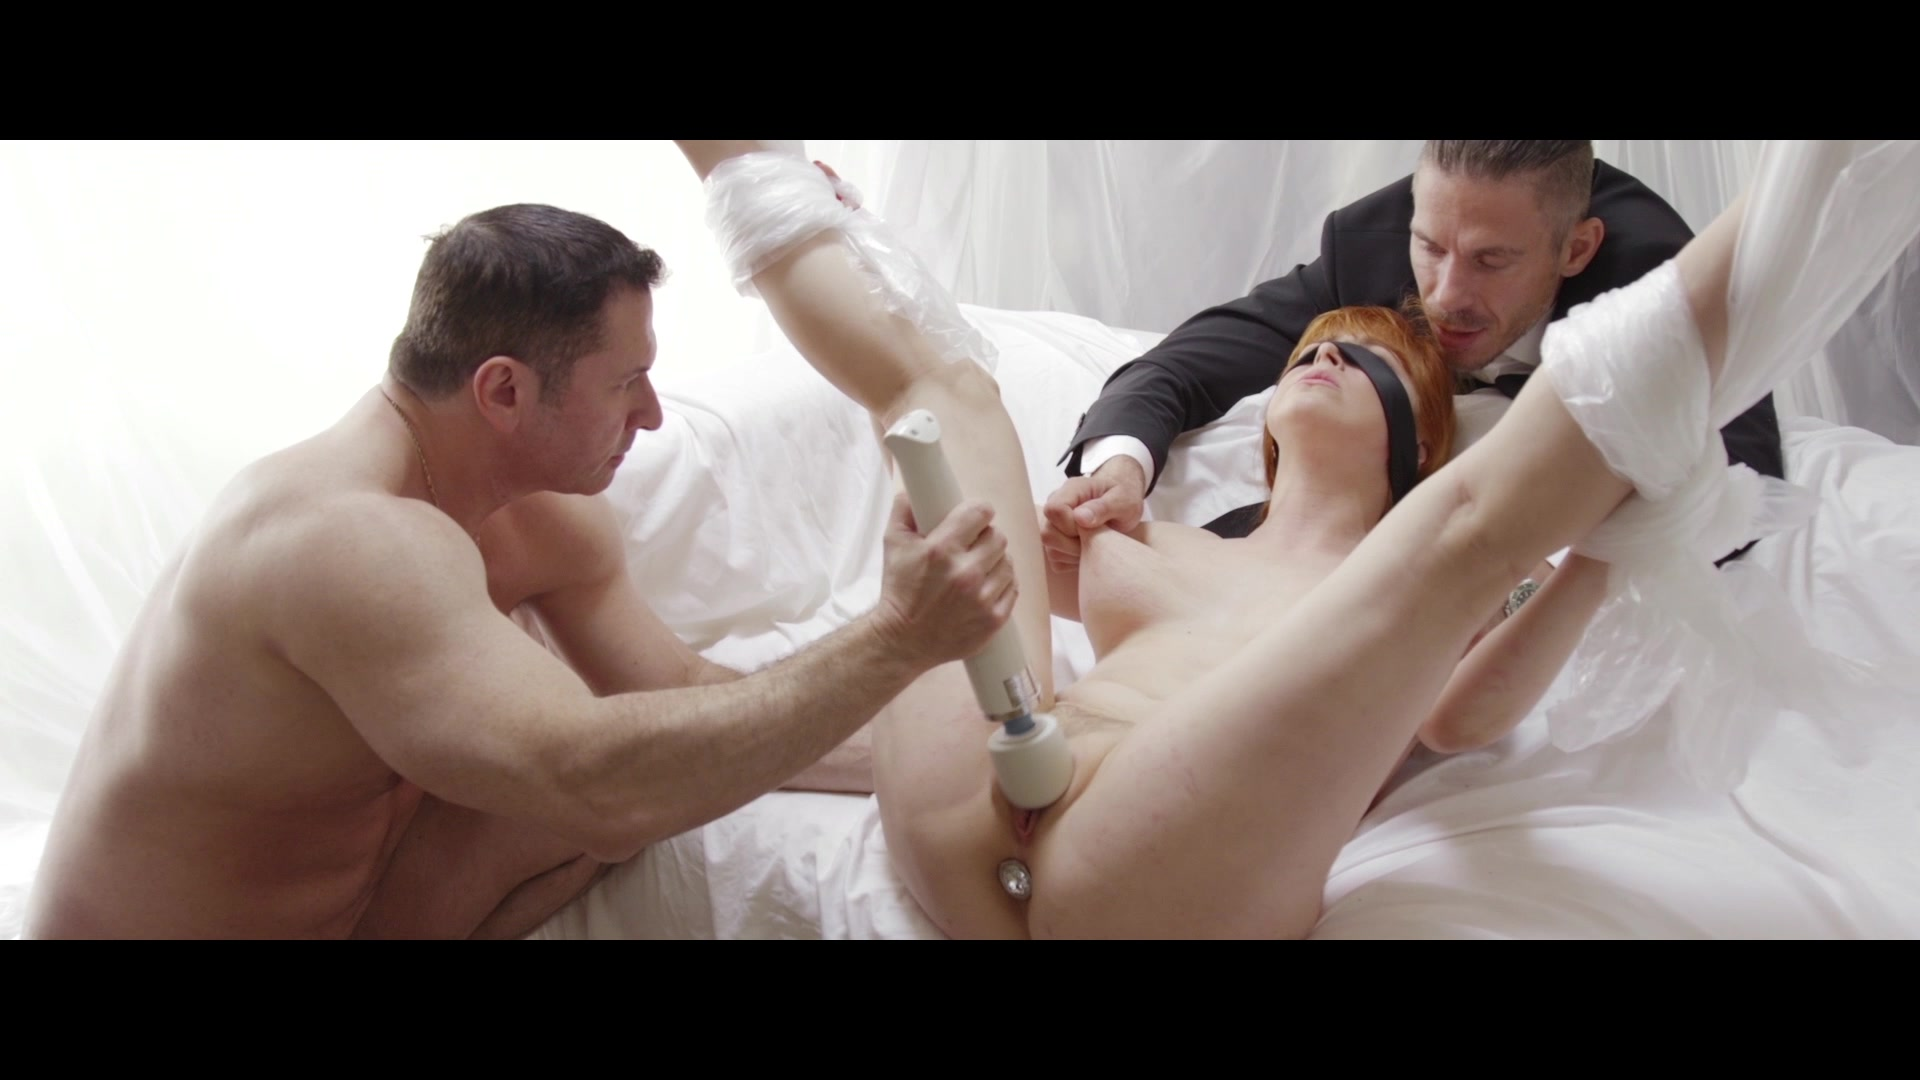 Scene with John Strong, Mick Blue and Penny Pax - image 11 out of 20